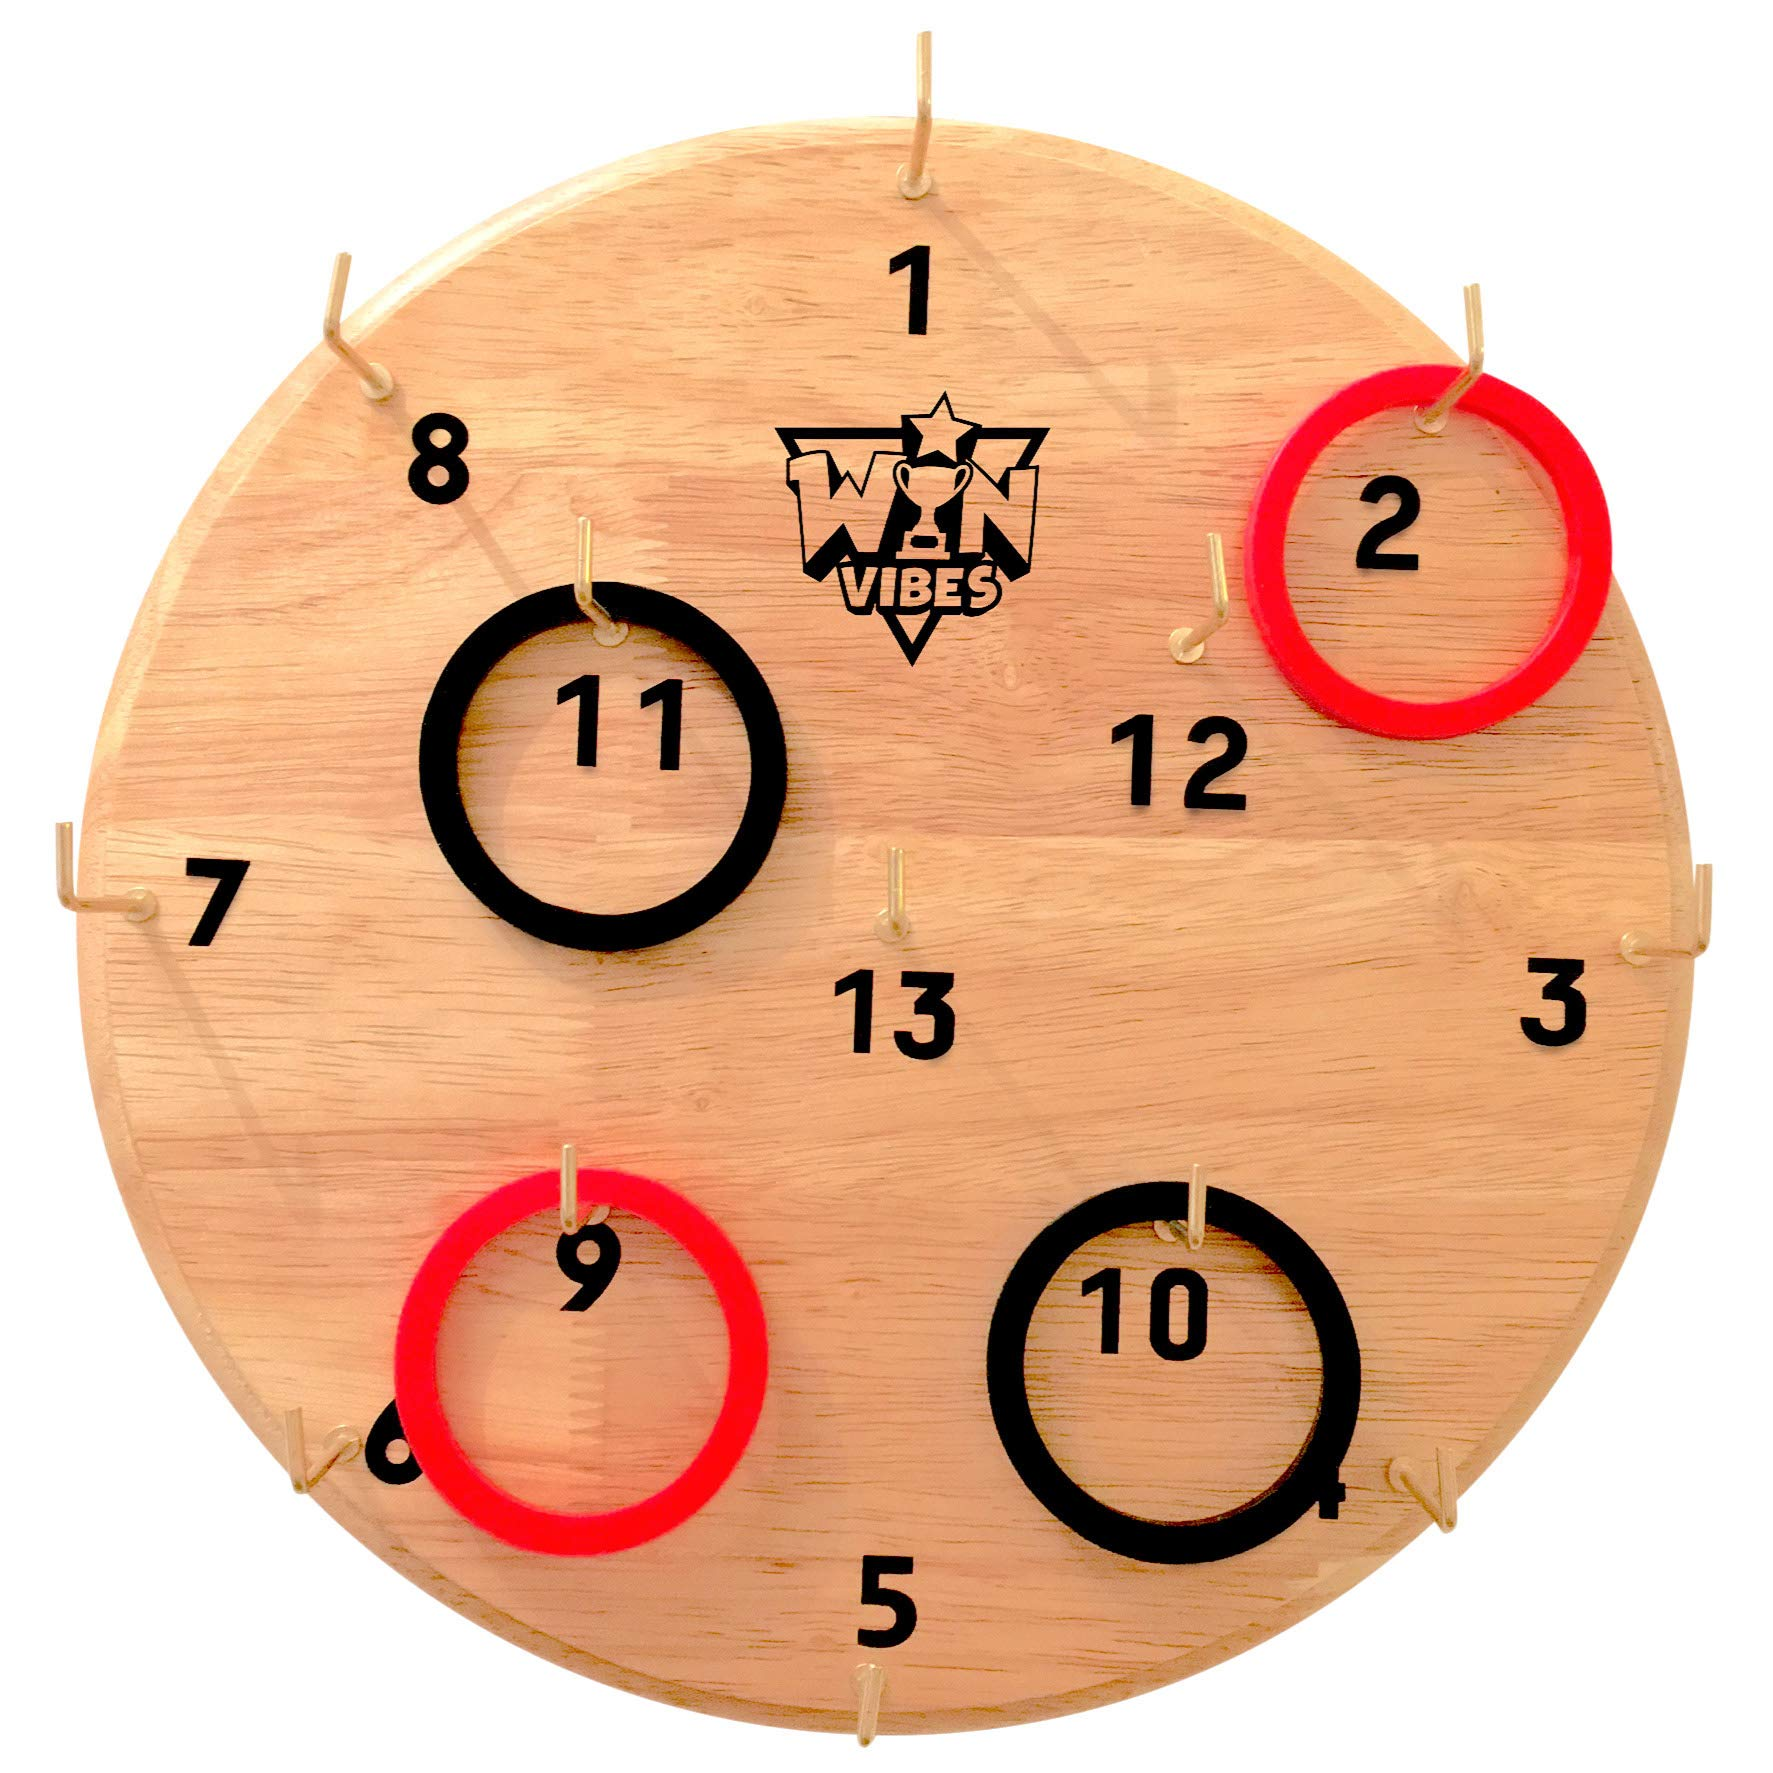 Hook and Ring Toss Game by Win Vibes - Classic Fun Hookey Game for Adults Teens and Kids - Birthday Idea for Men - Beautiful Solid Board - Easy Set-Up with Clear Rules - Indoor and Outdoor Party Games by Win Vibes